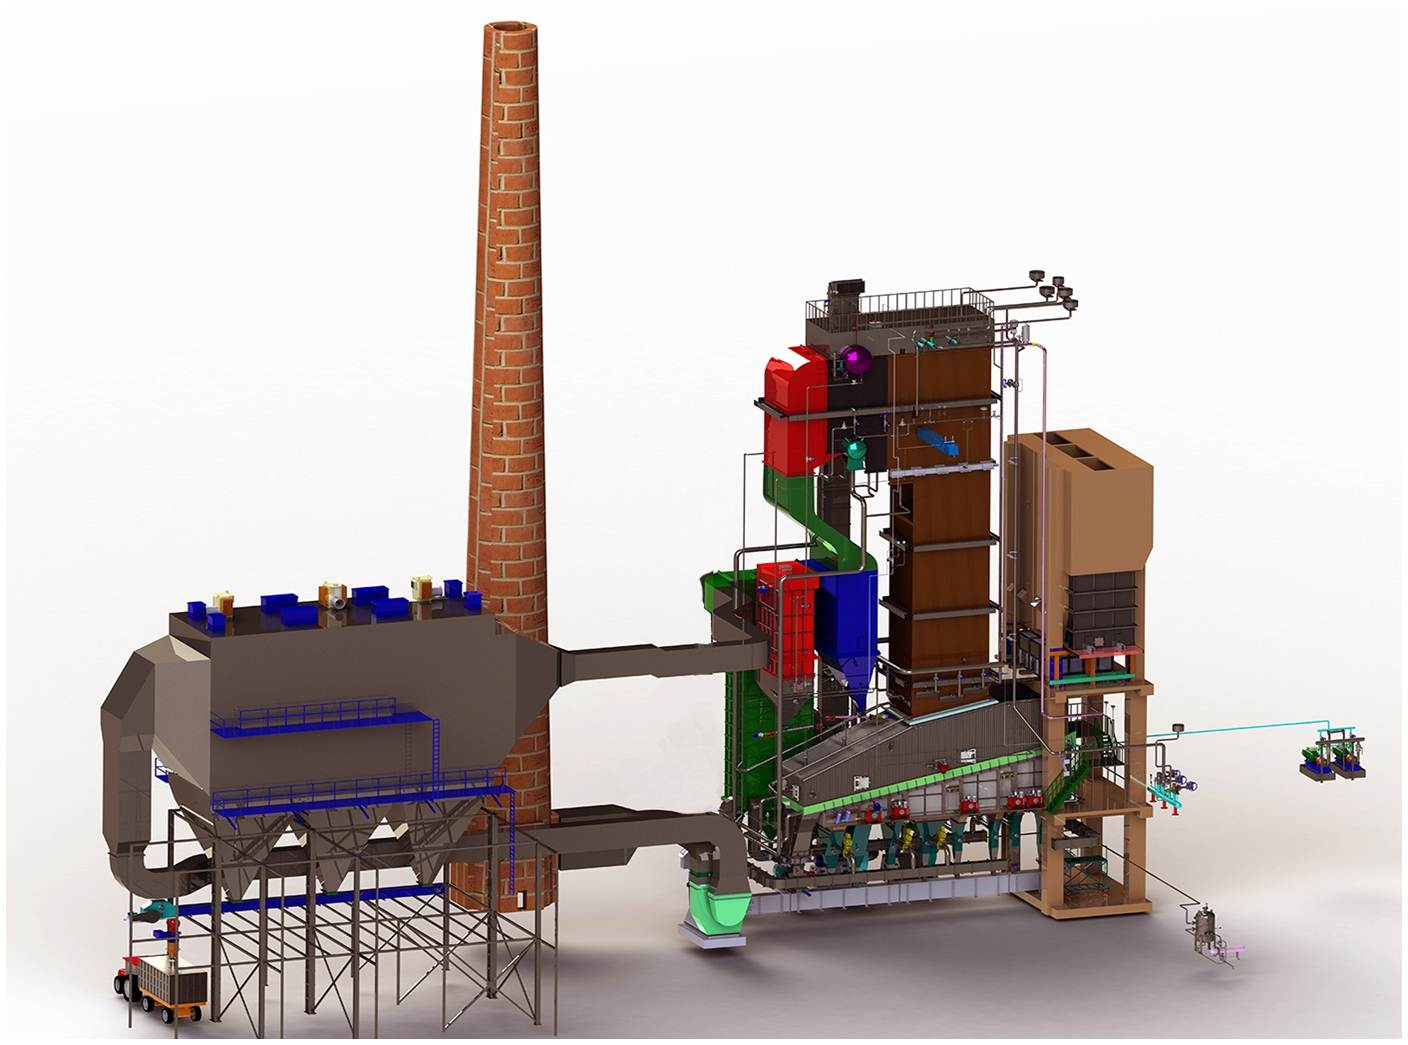 Steam, solid fuel and gas boilers